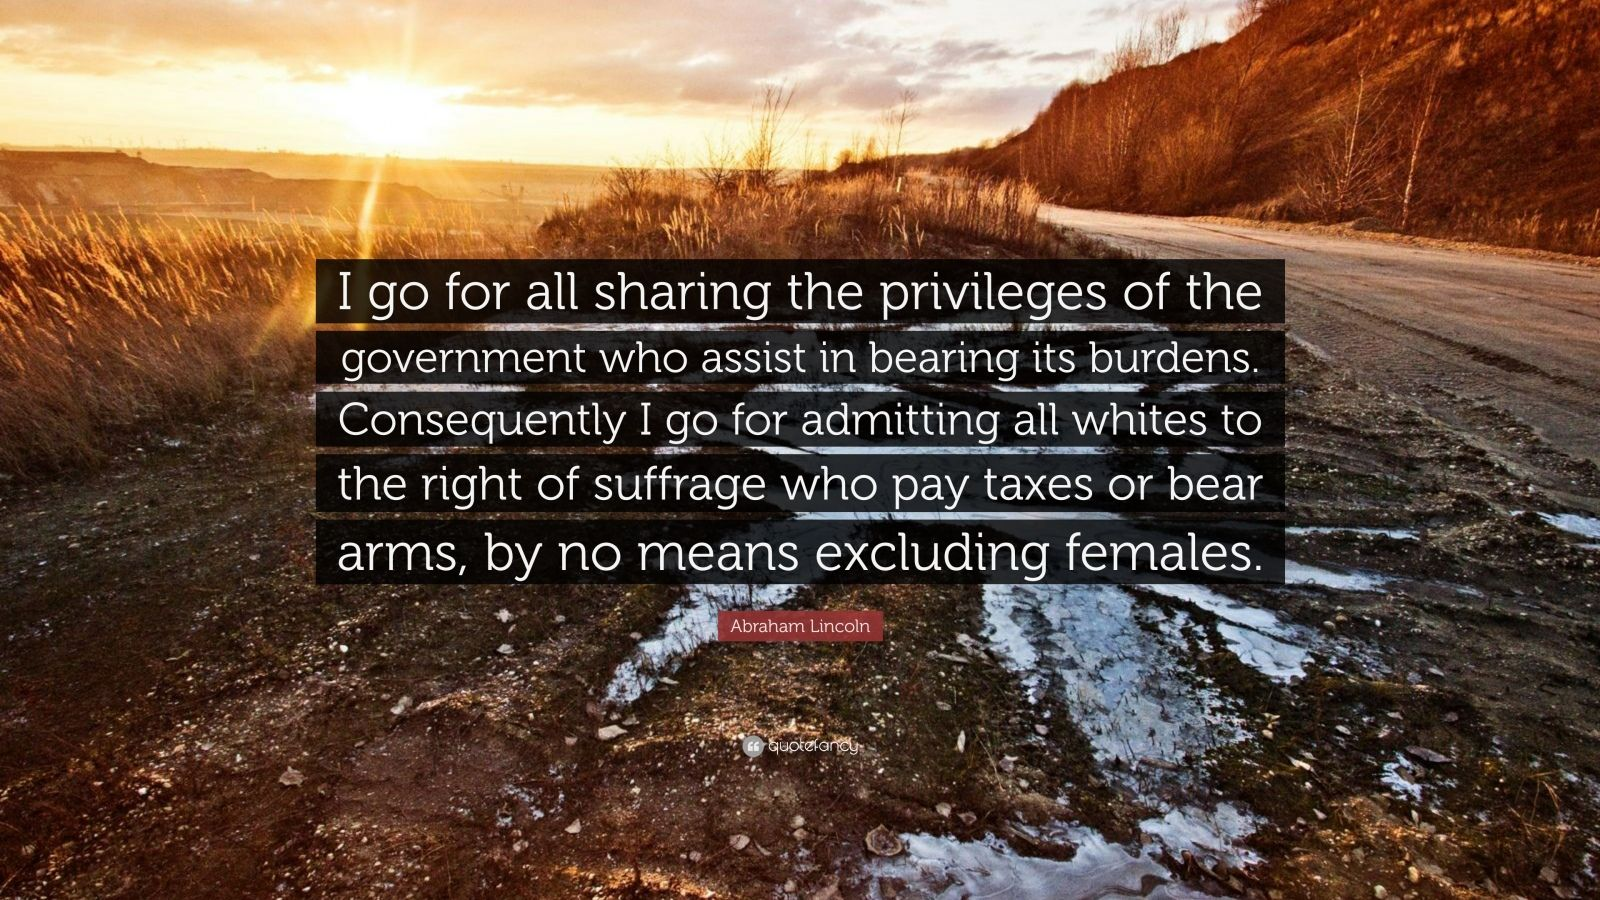 """Abraham Lincoln Quote: """"I go for all sharing the privileges of the government who assist in bearing its burdens. Consequently I go for admitting all whites to the right of suffrage who pay taxes or bear arms, by no means excluding females."""""""